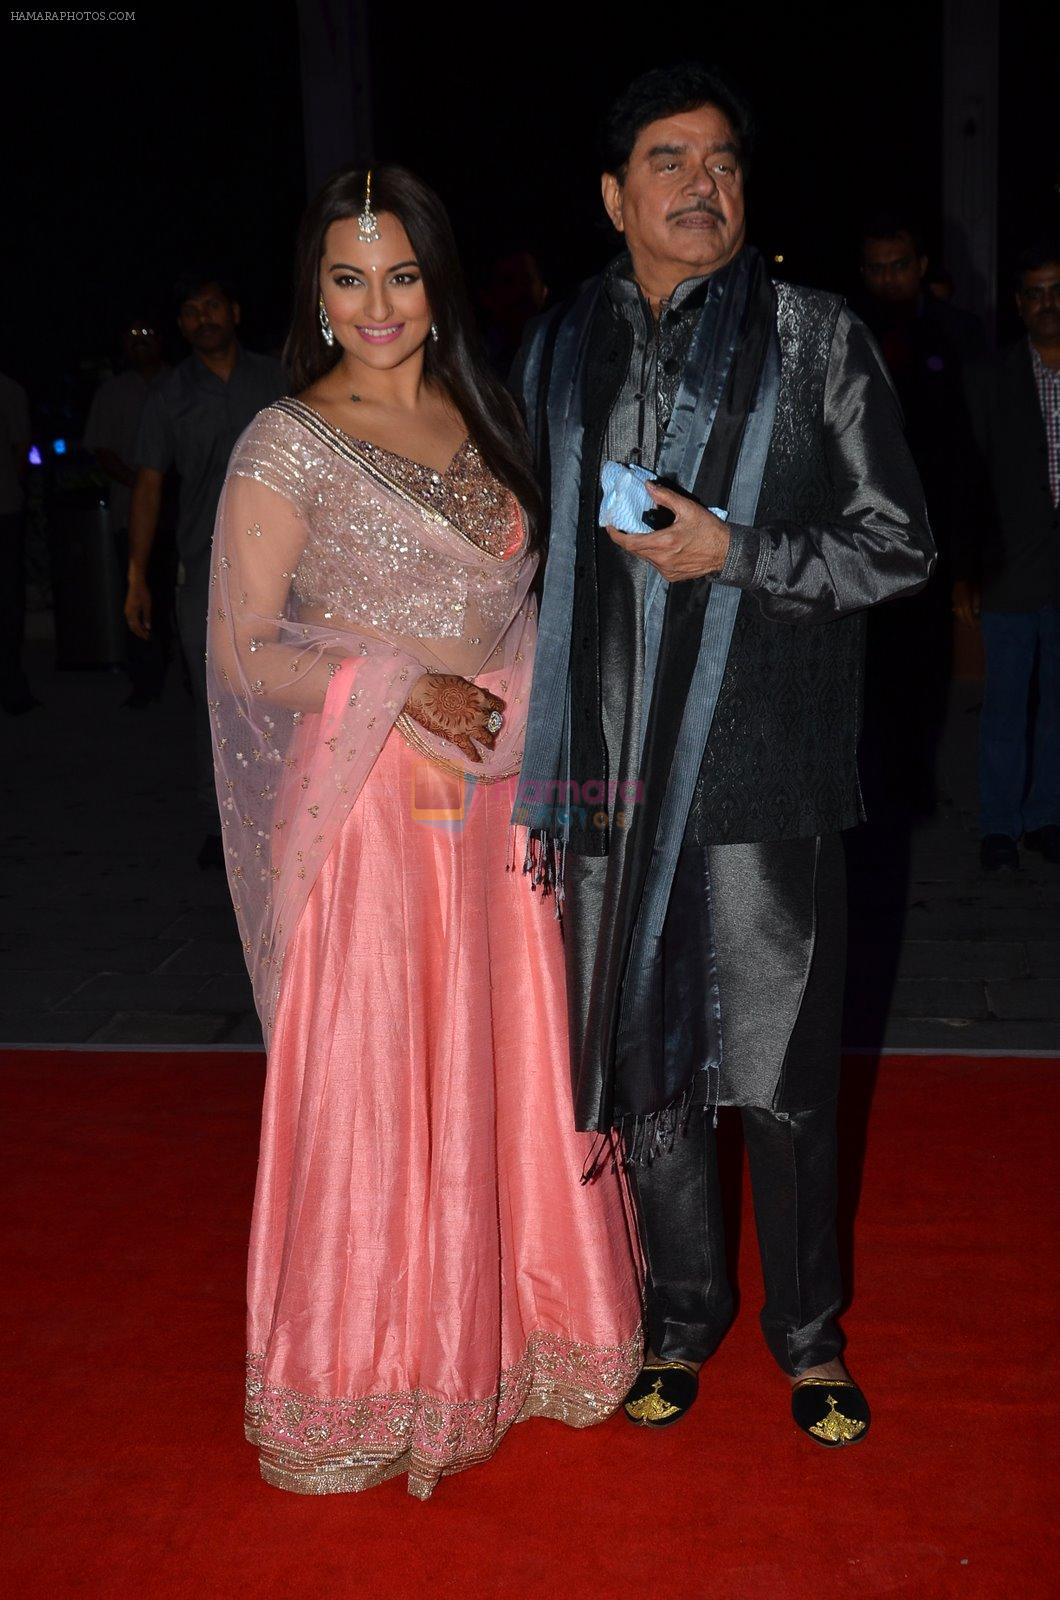 shatrughan sinha, Sonakshi Sinha at Kush Wedding Reception in Sahara Star, Mumbai on 19th Jan 2015